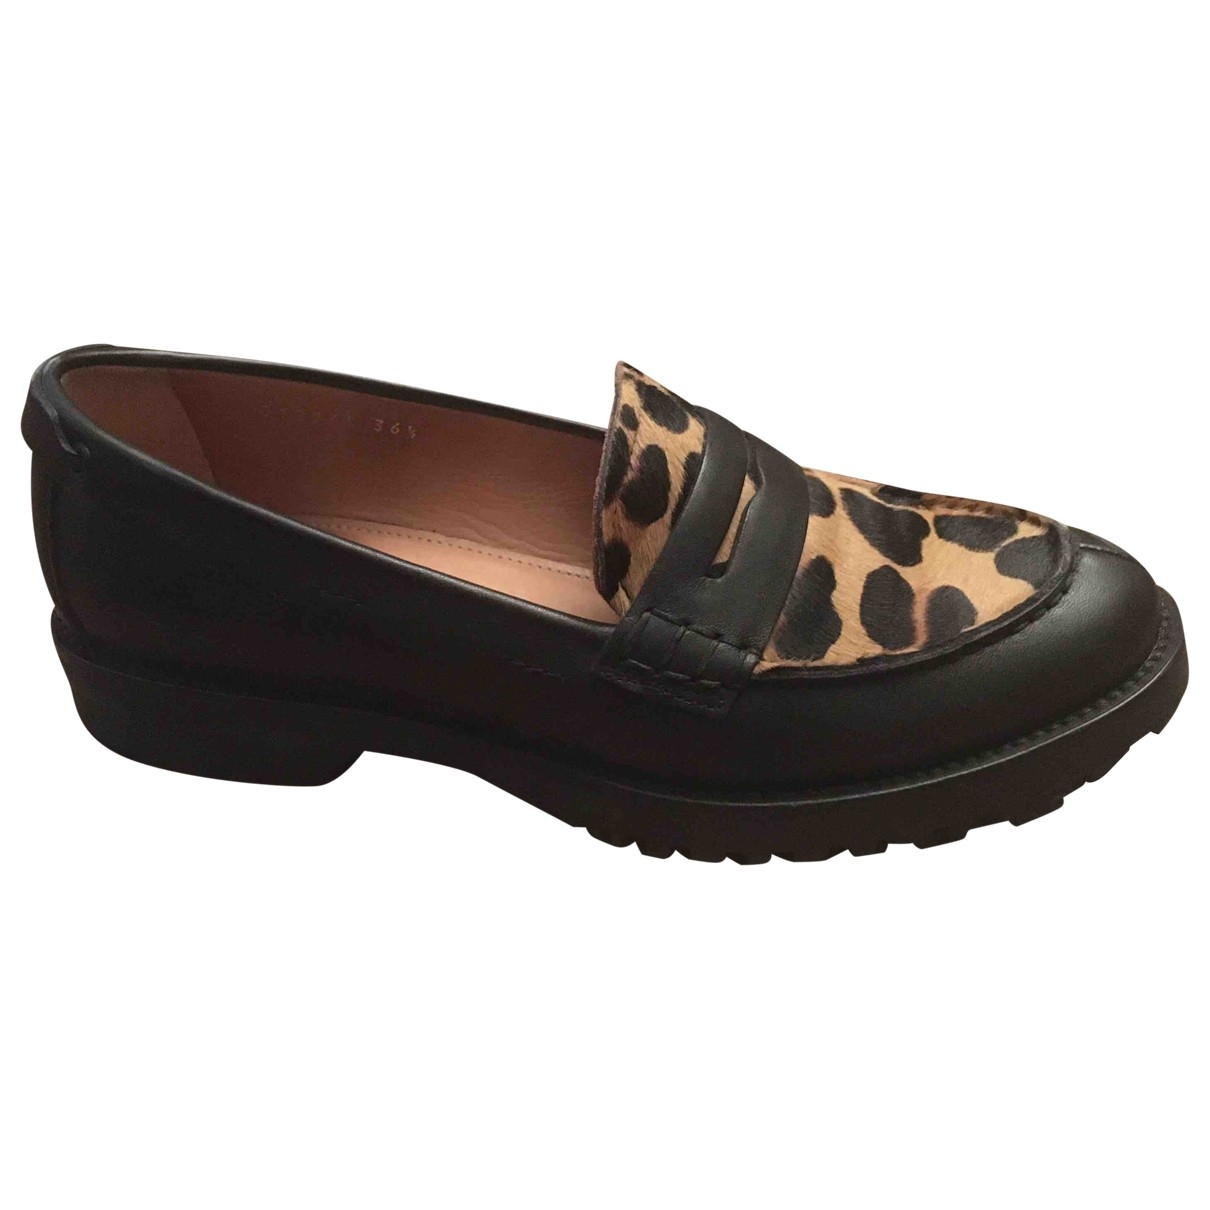 Carshoe \N Black Leather Flats for Women 36.5 IT